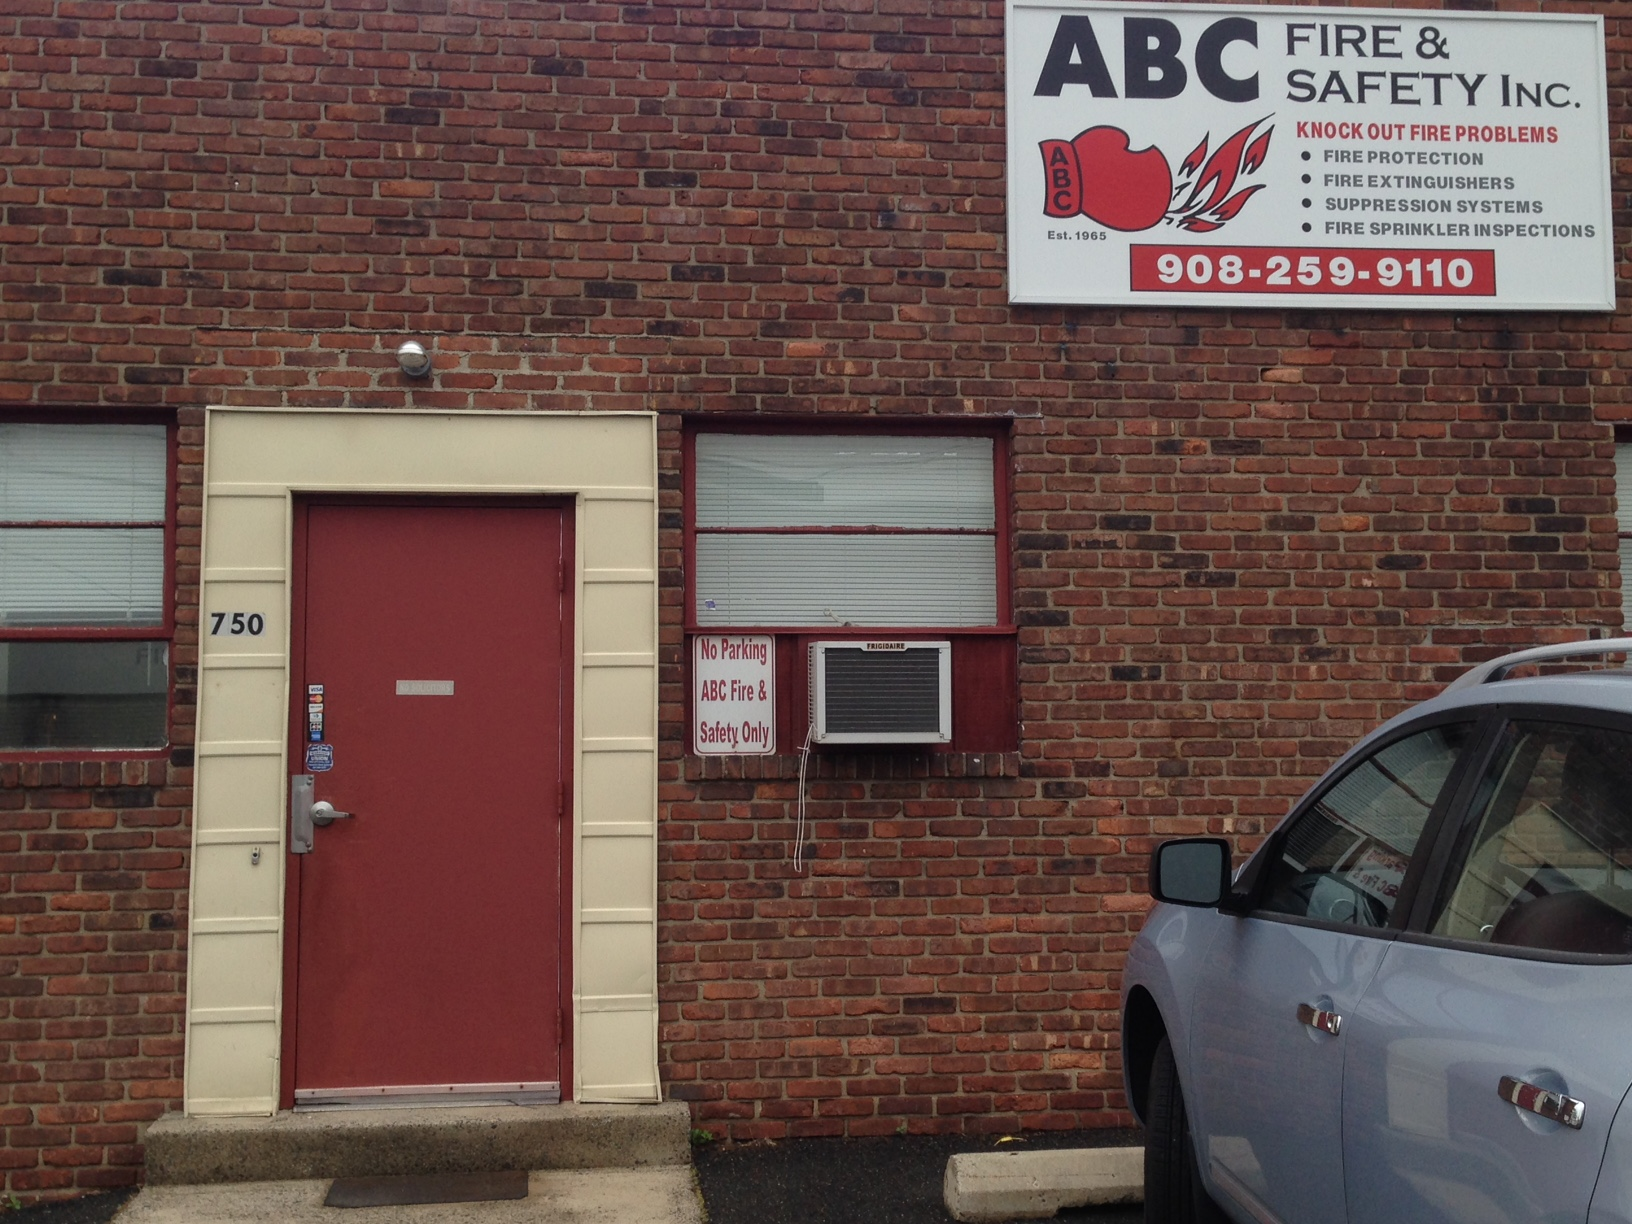 ABC Fire & Safety image 1